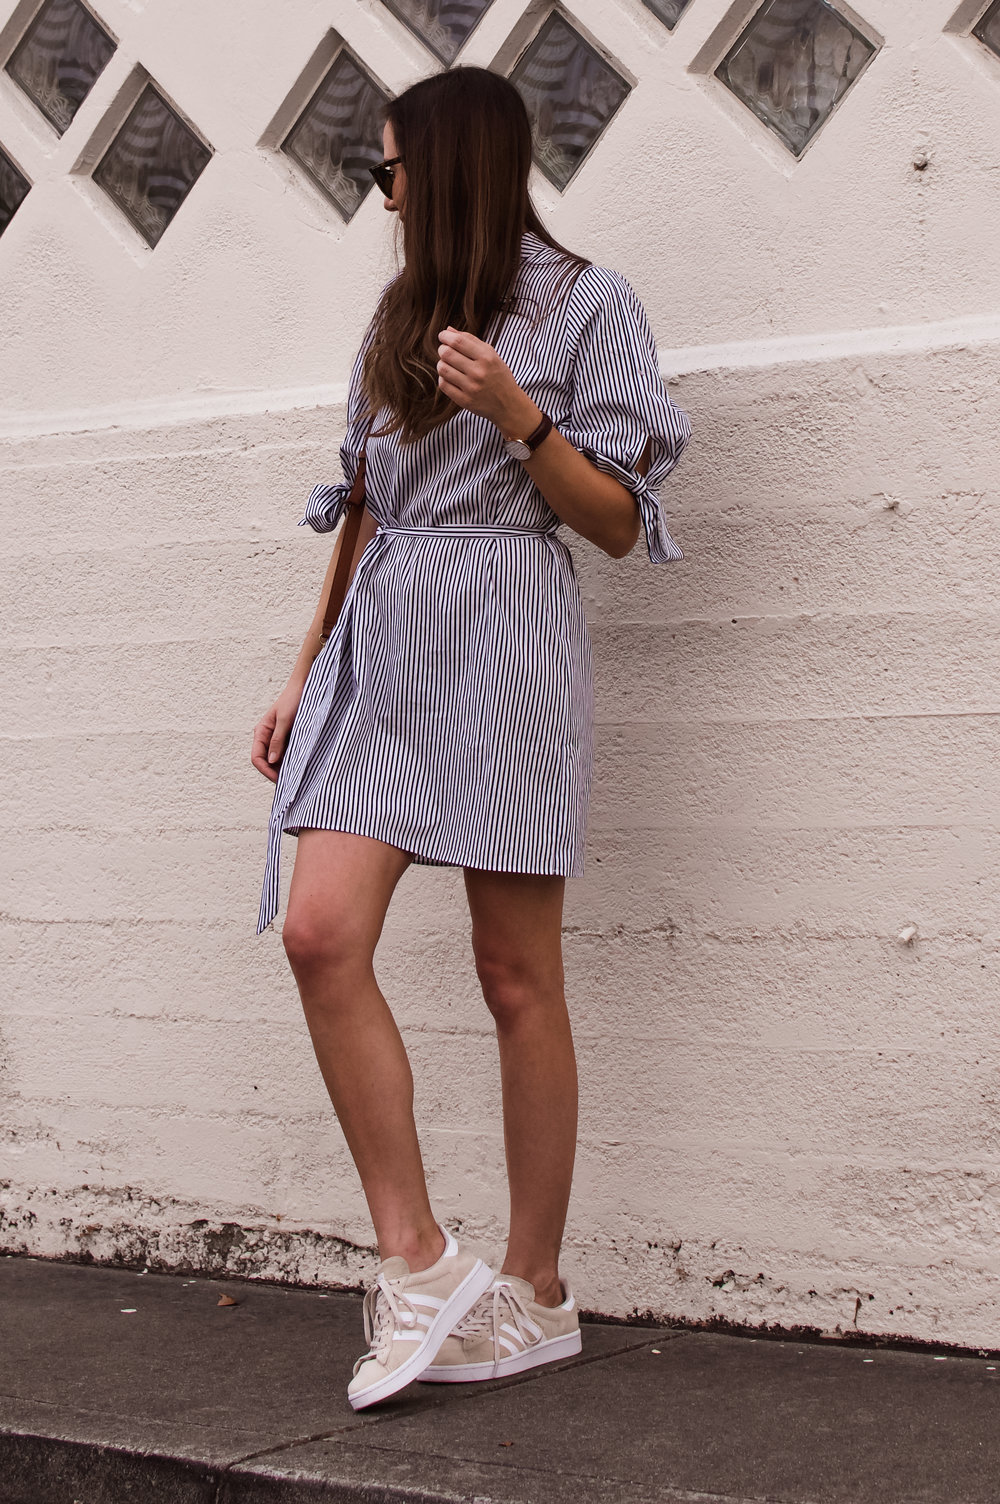 Shop the Look Below. Topshop Dress | Adidas Sneakers | Madewell Bag | Ray-Ban Sunglasses